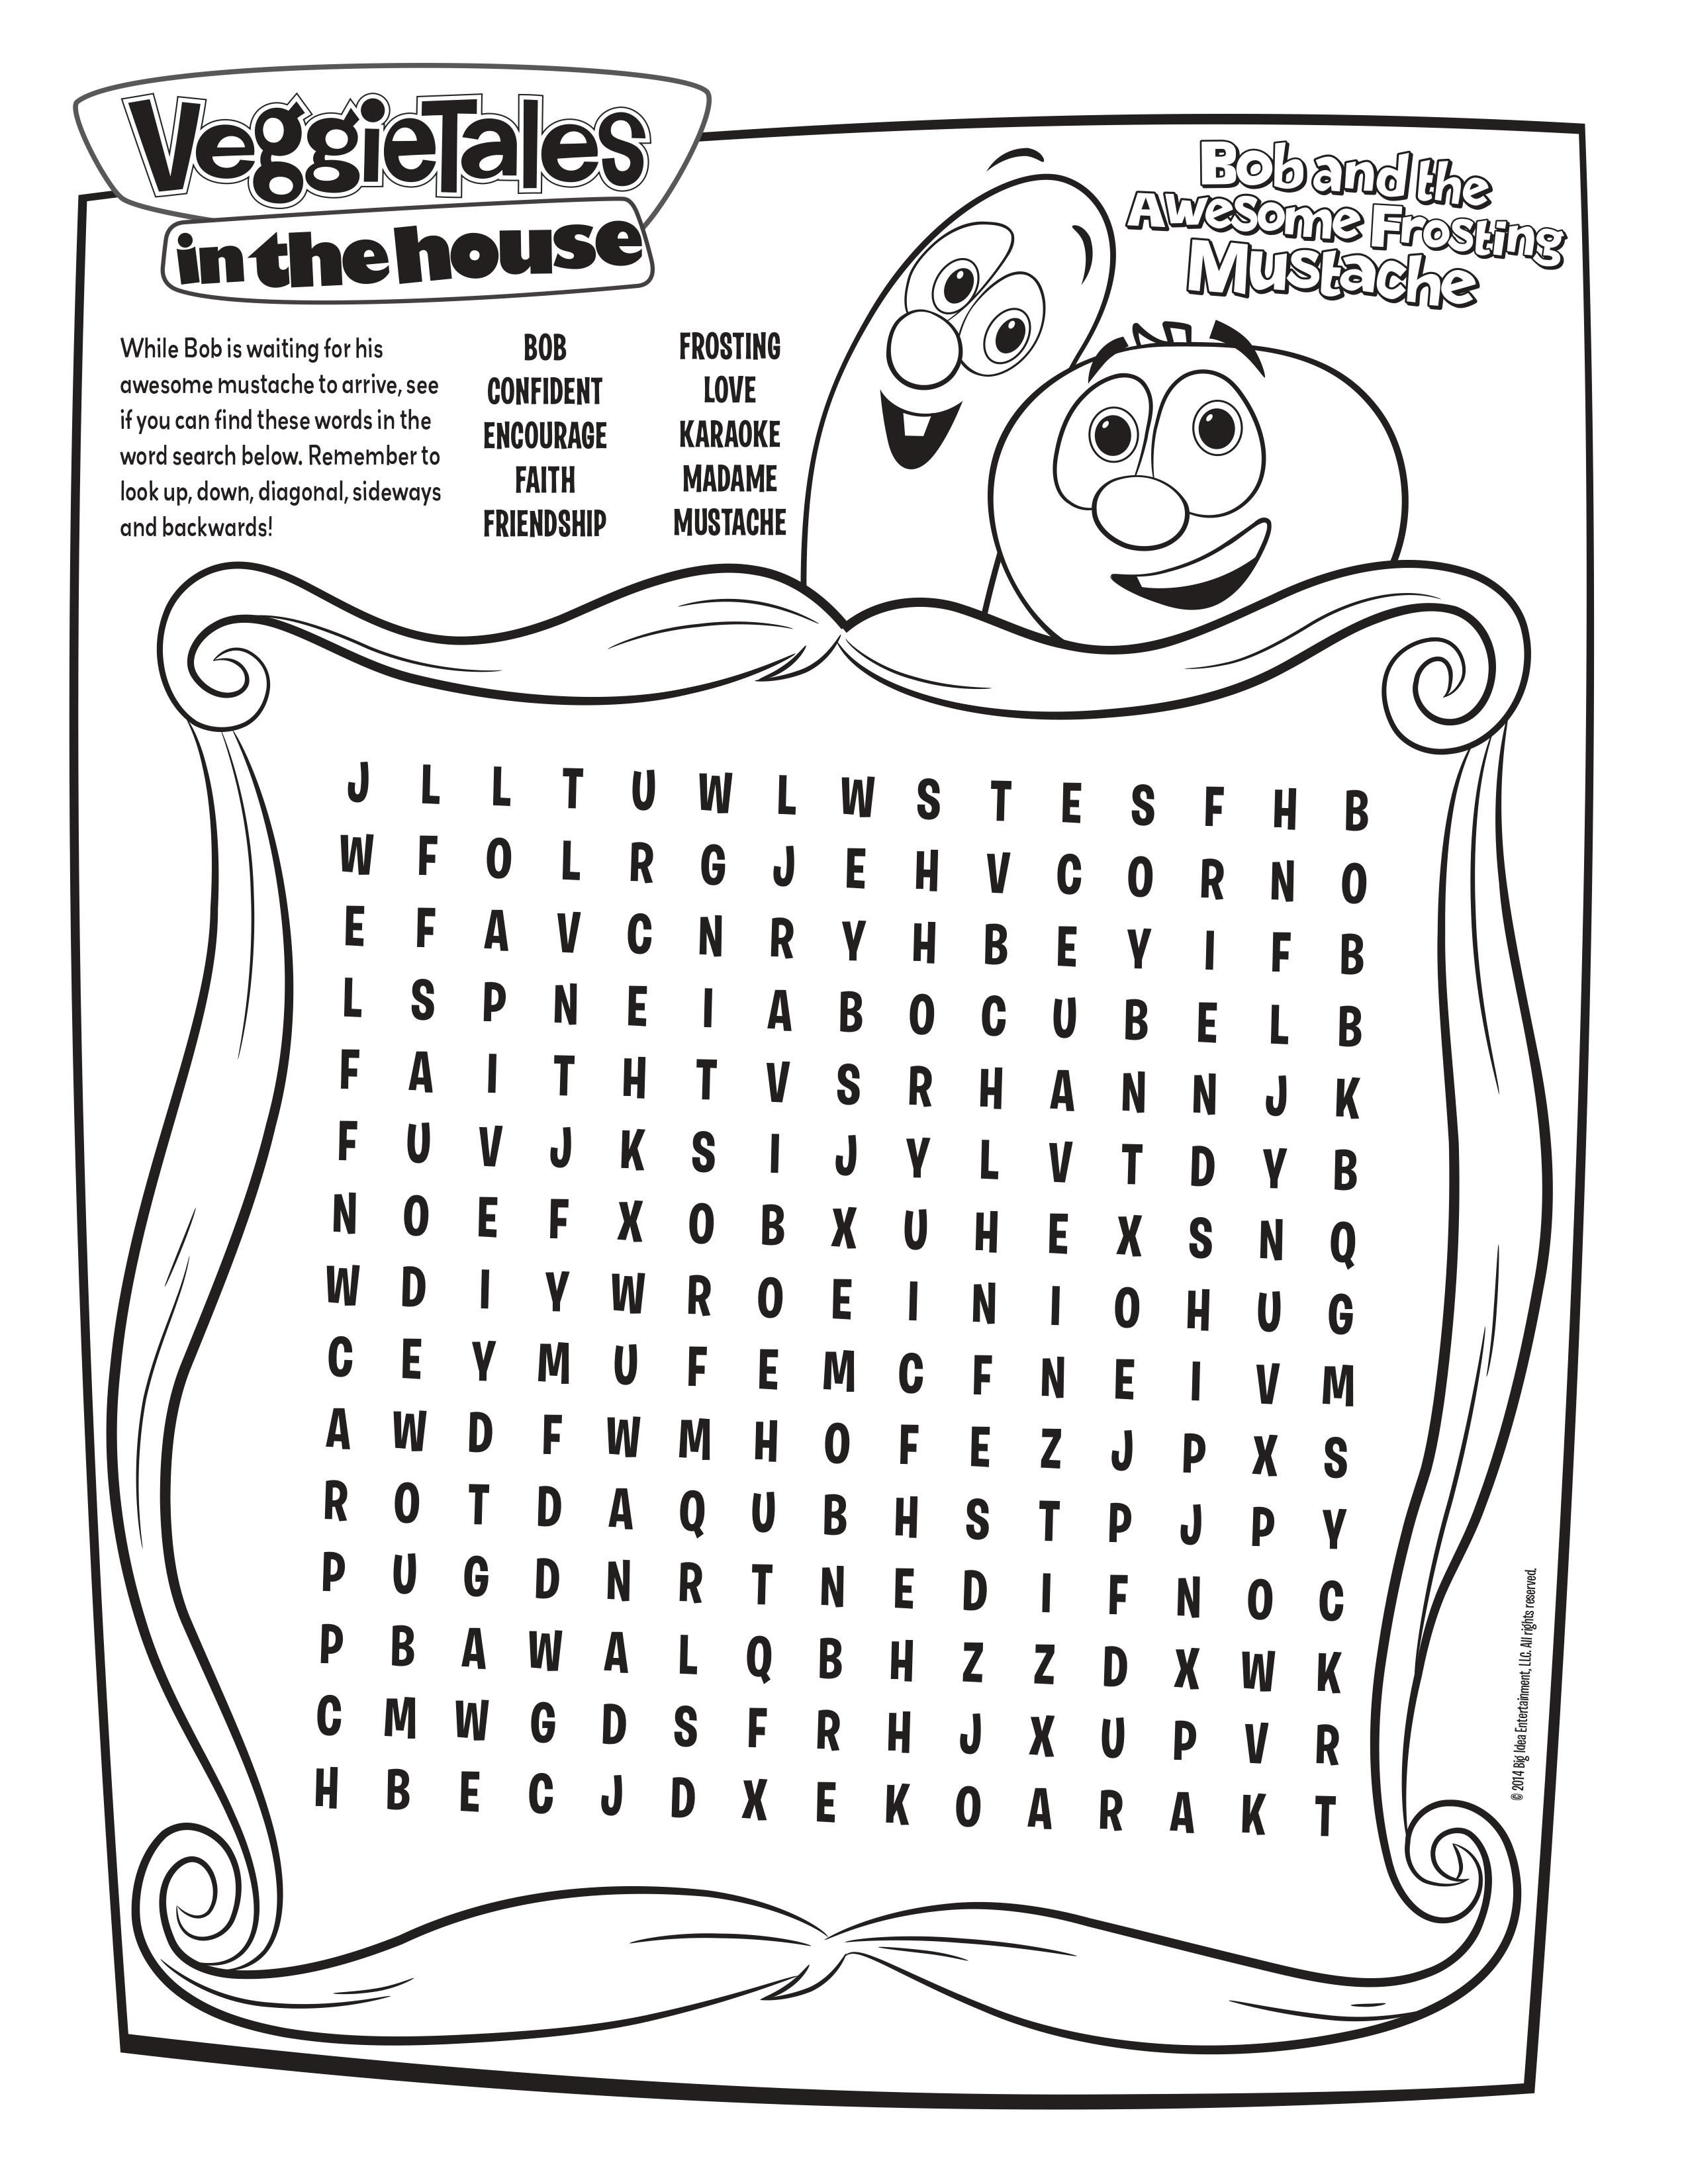 Free Veggie Tales Word Search Veggie Tales Veggietales Coloring Pages